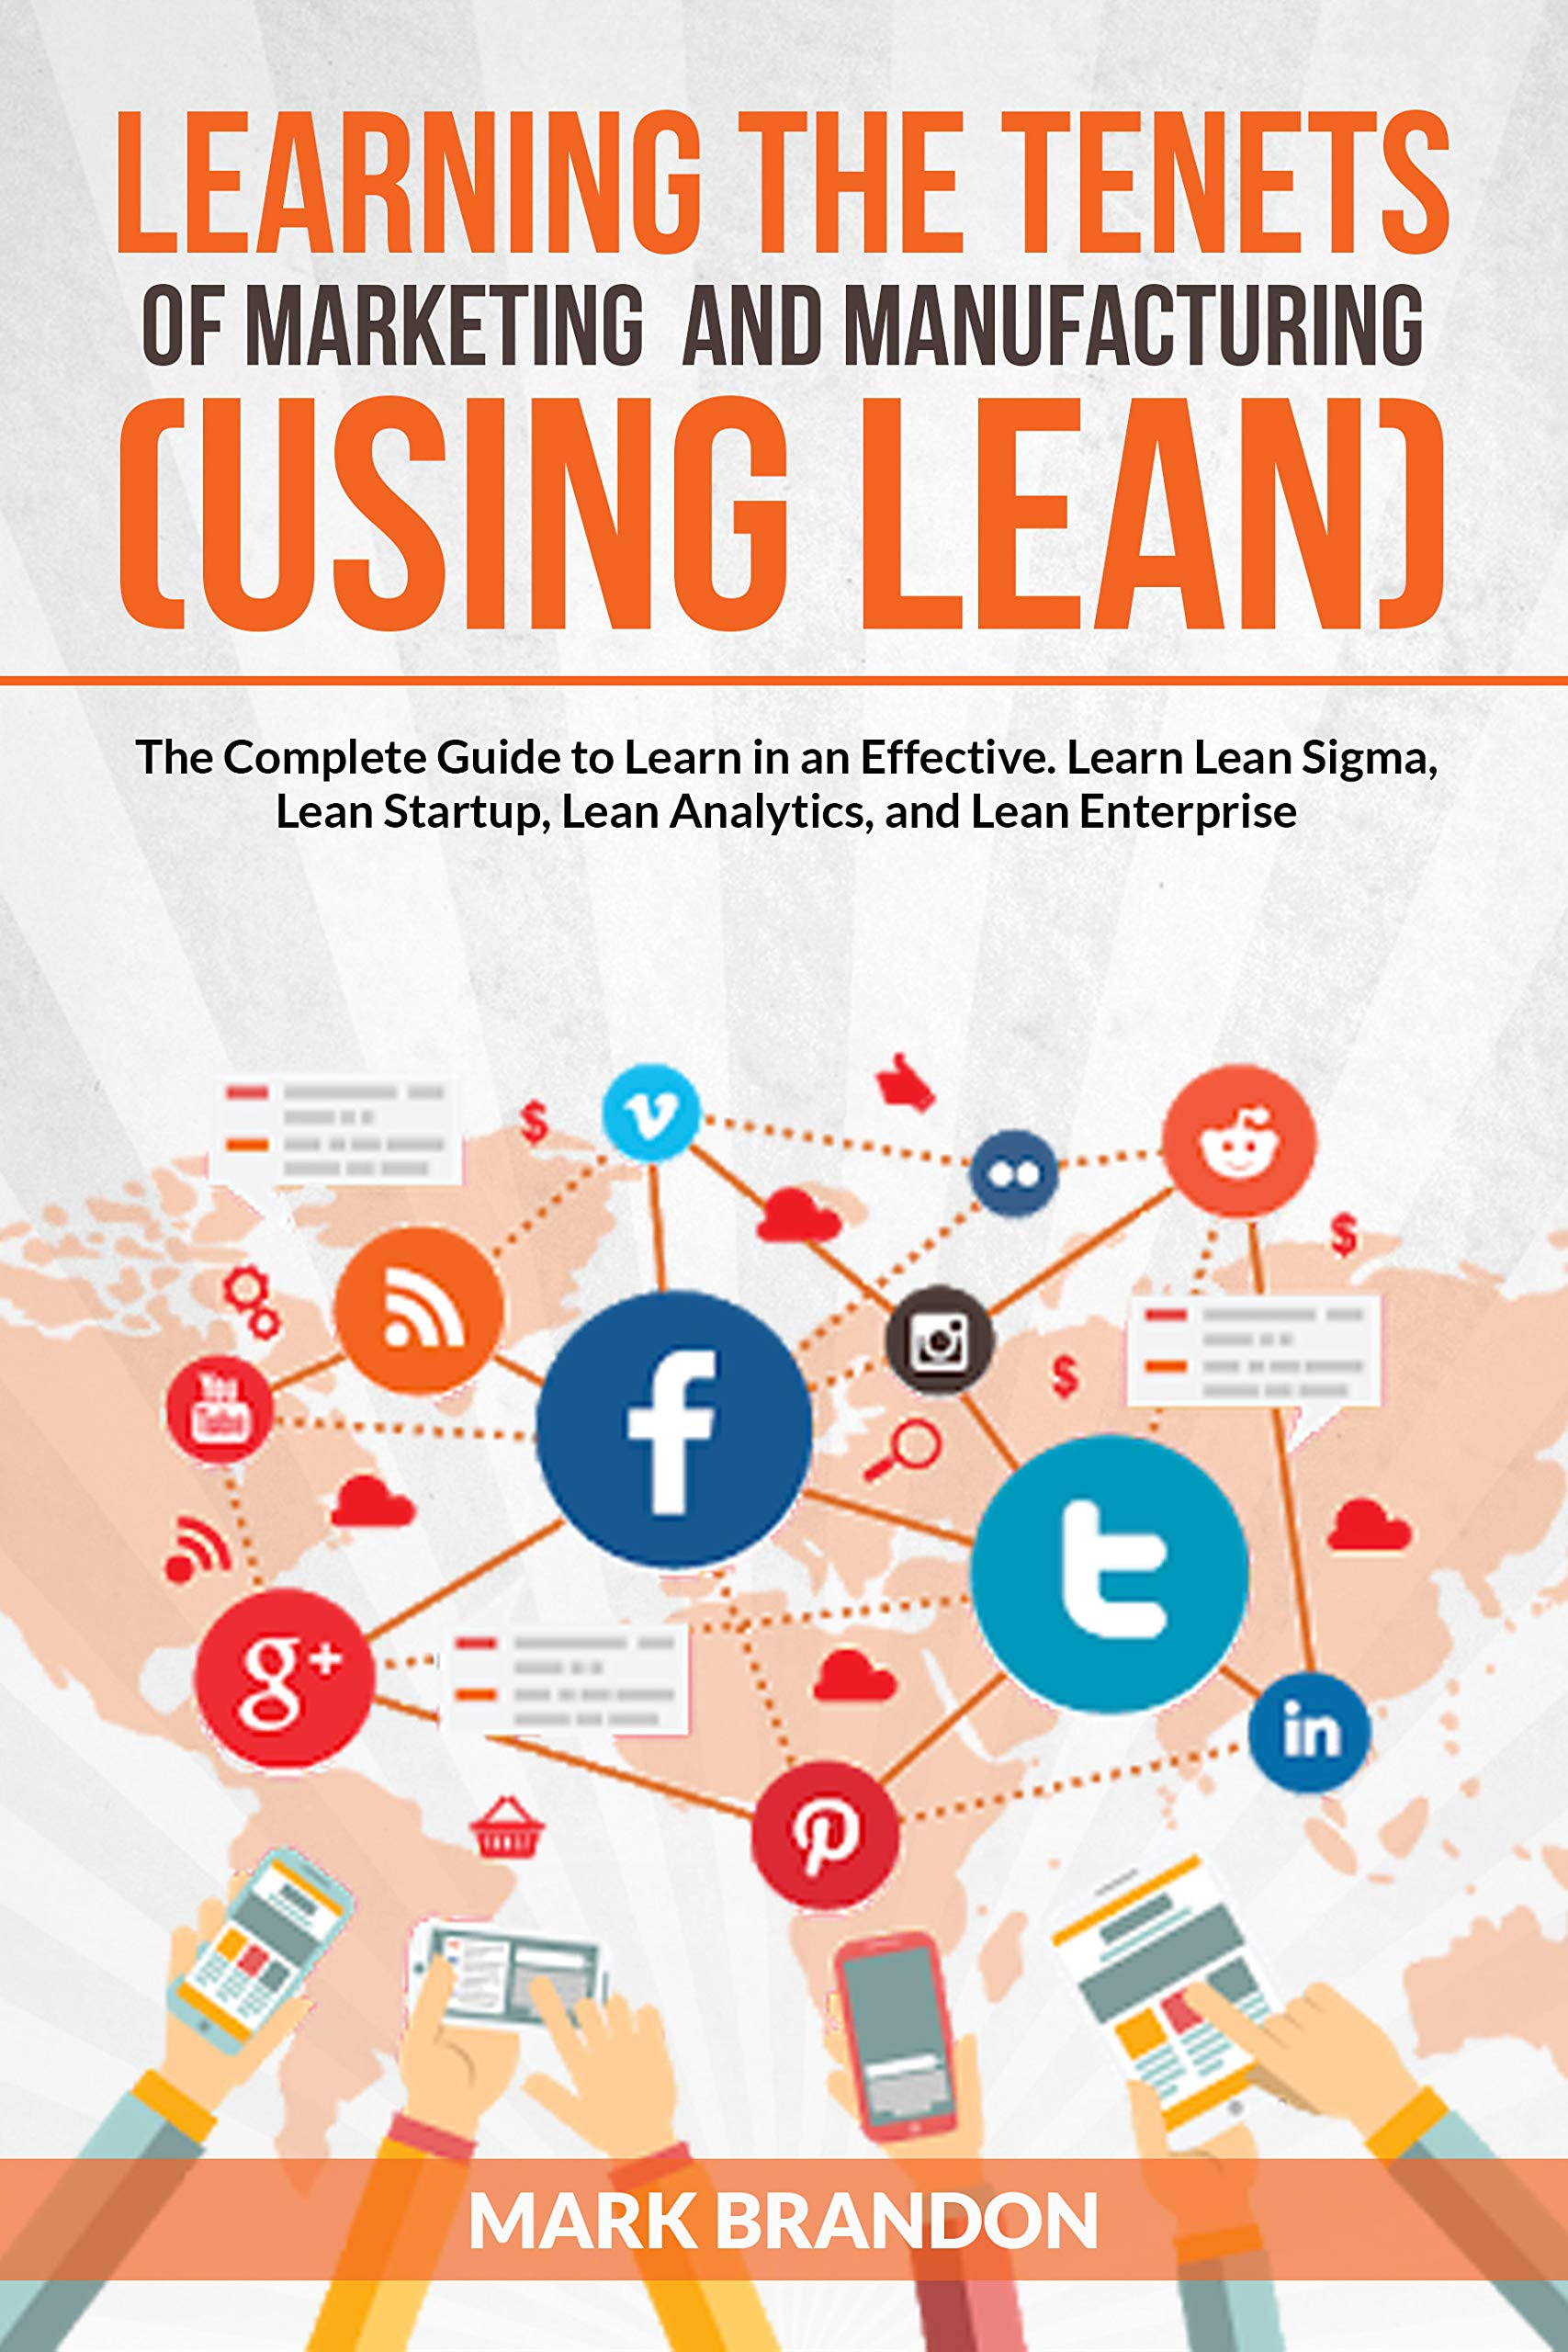 LEARNING THE TENETS OF MARKETING AND MANUFACTURING (USING LEAN): The Complete Guide to Learn Effective Marketing strategy. Learn Lean Sigma, Lean Startup, Lean Analytics, and Lean Enterprise